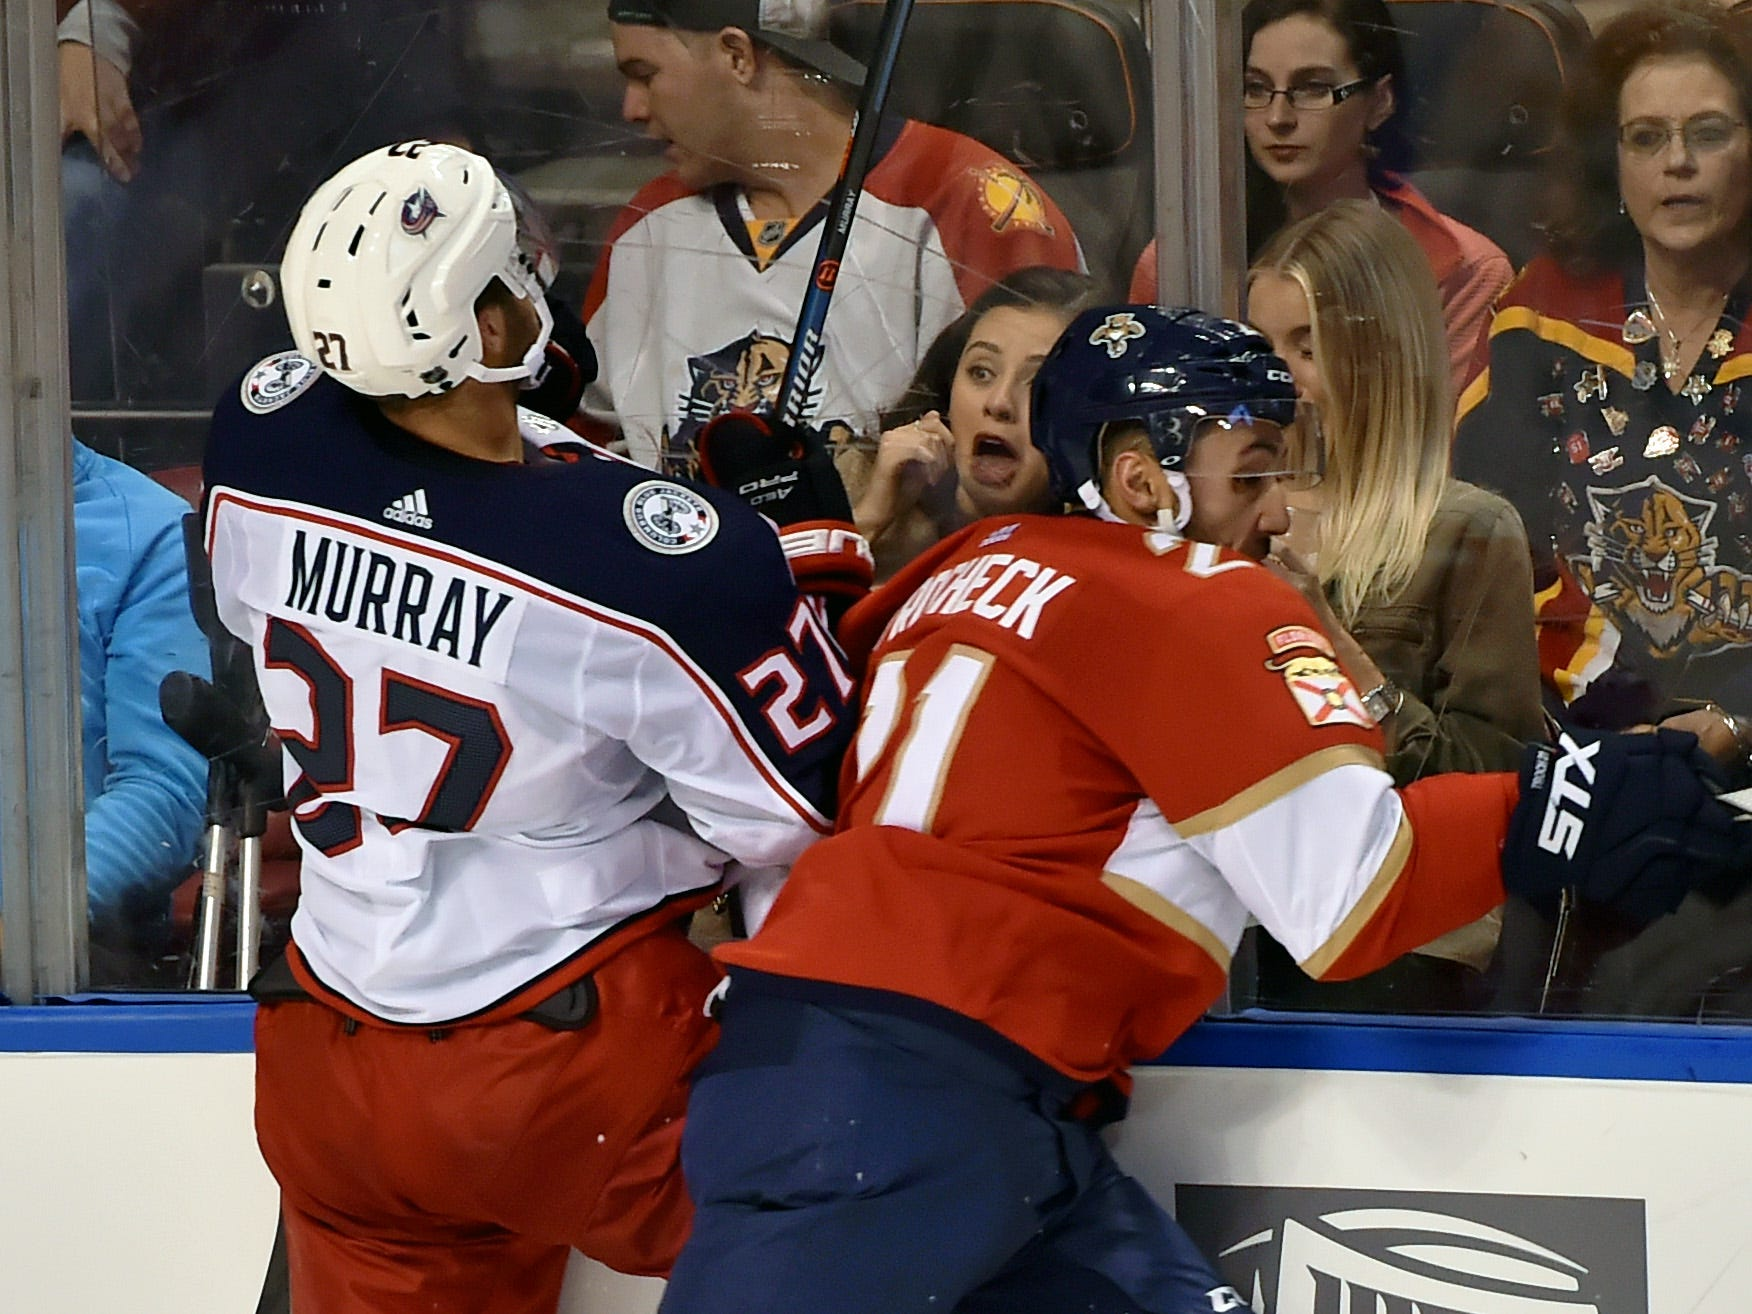 Oct. 11: Columbus Blue Jackets defenseman Ryan Murray (27) is checked into the boards by Florida Panthers center Vincent Trocheck (21), surprising a fan during the third period at BB&T Center in Sunrise, Fla.